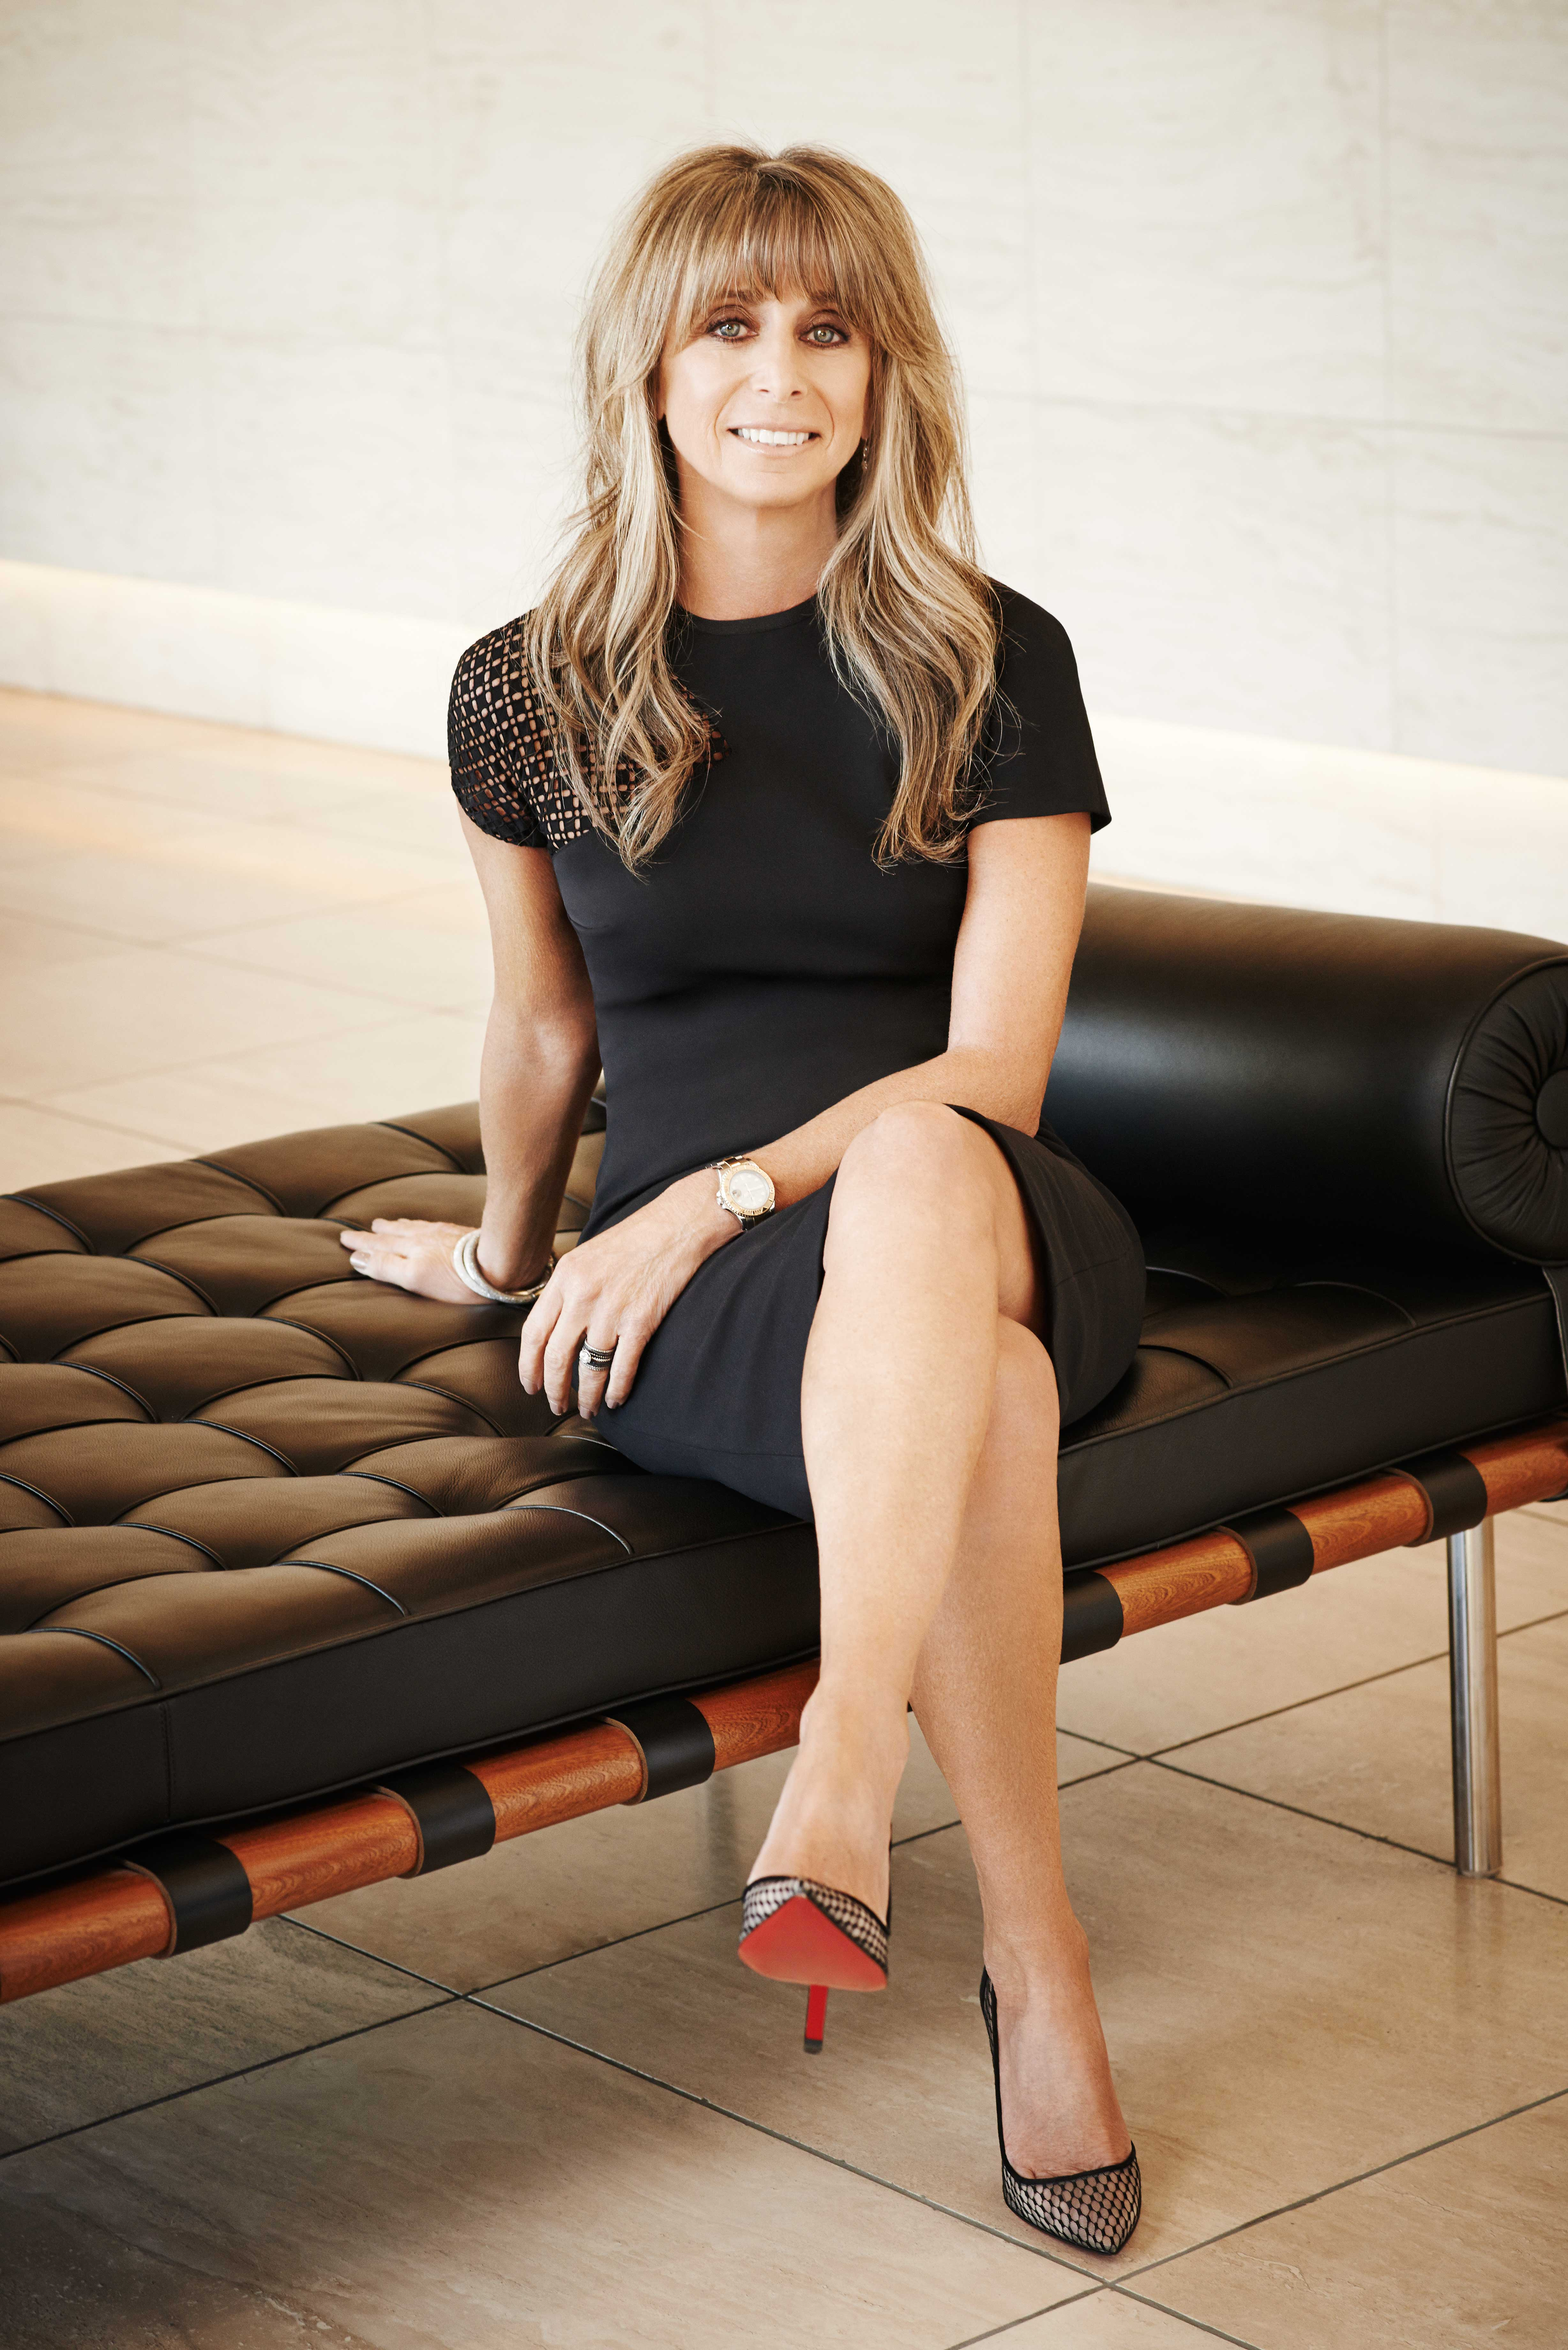 Bonnie Hammer, chairman of NBCUniversal's Cable Entertainment Group